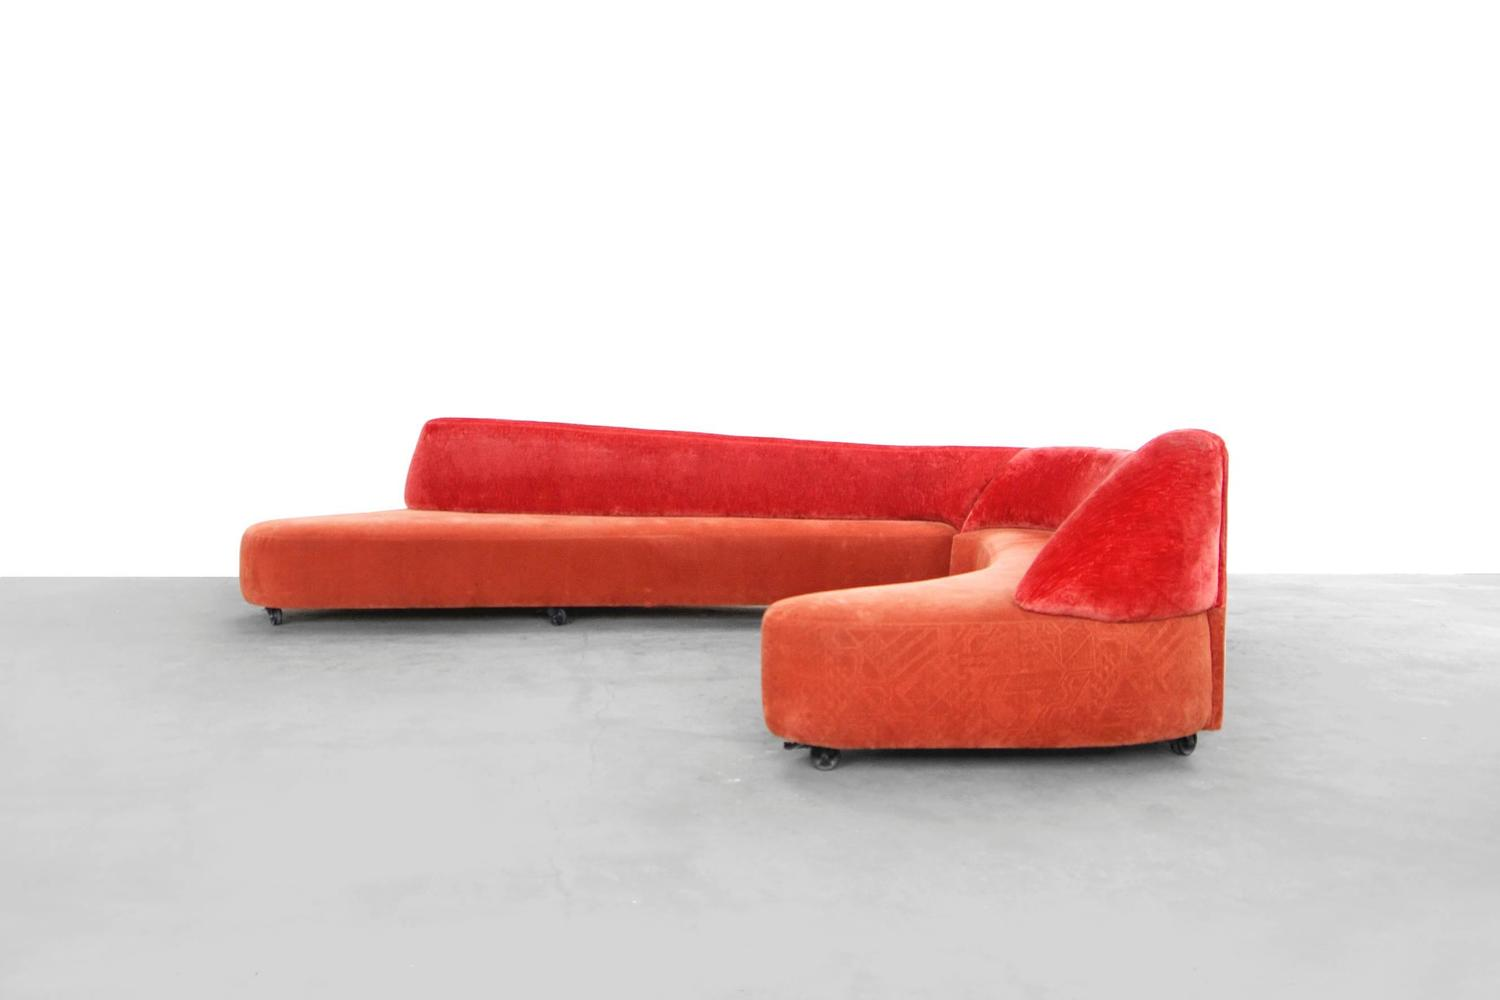 Asymmetric Sofa By Yasmine Mahmoudieh Special Model Design 1996 For Sale At 1stdibs